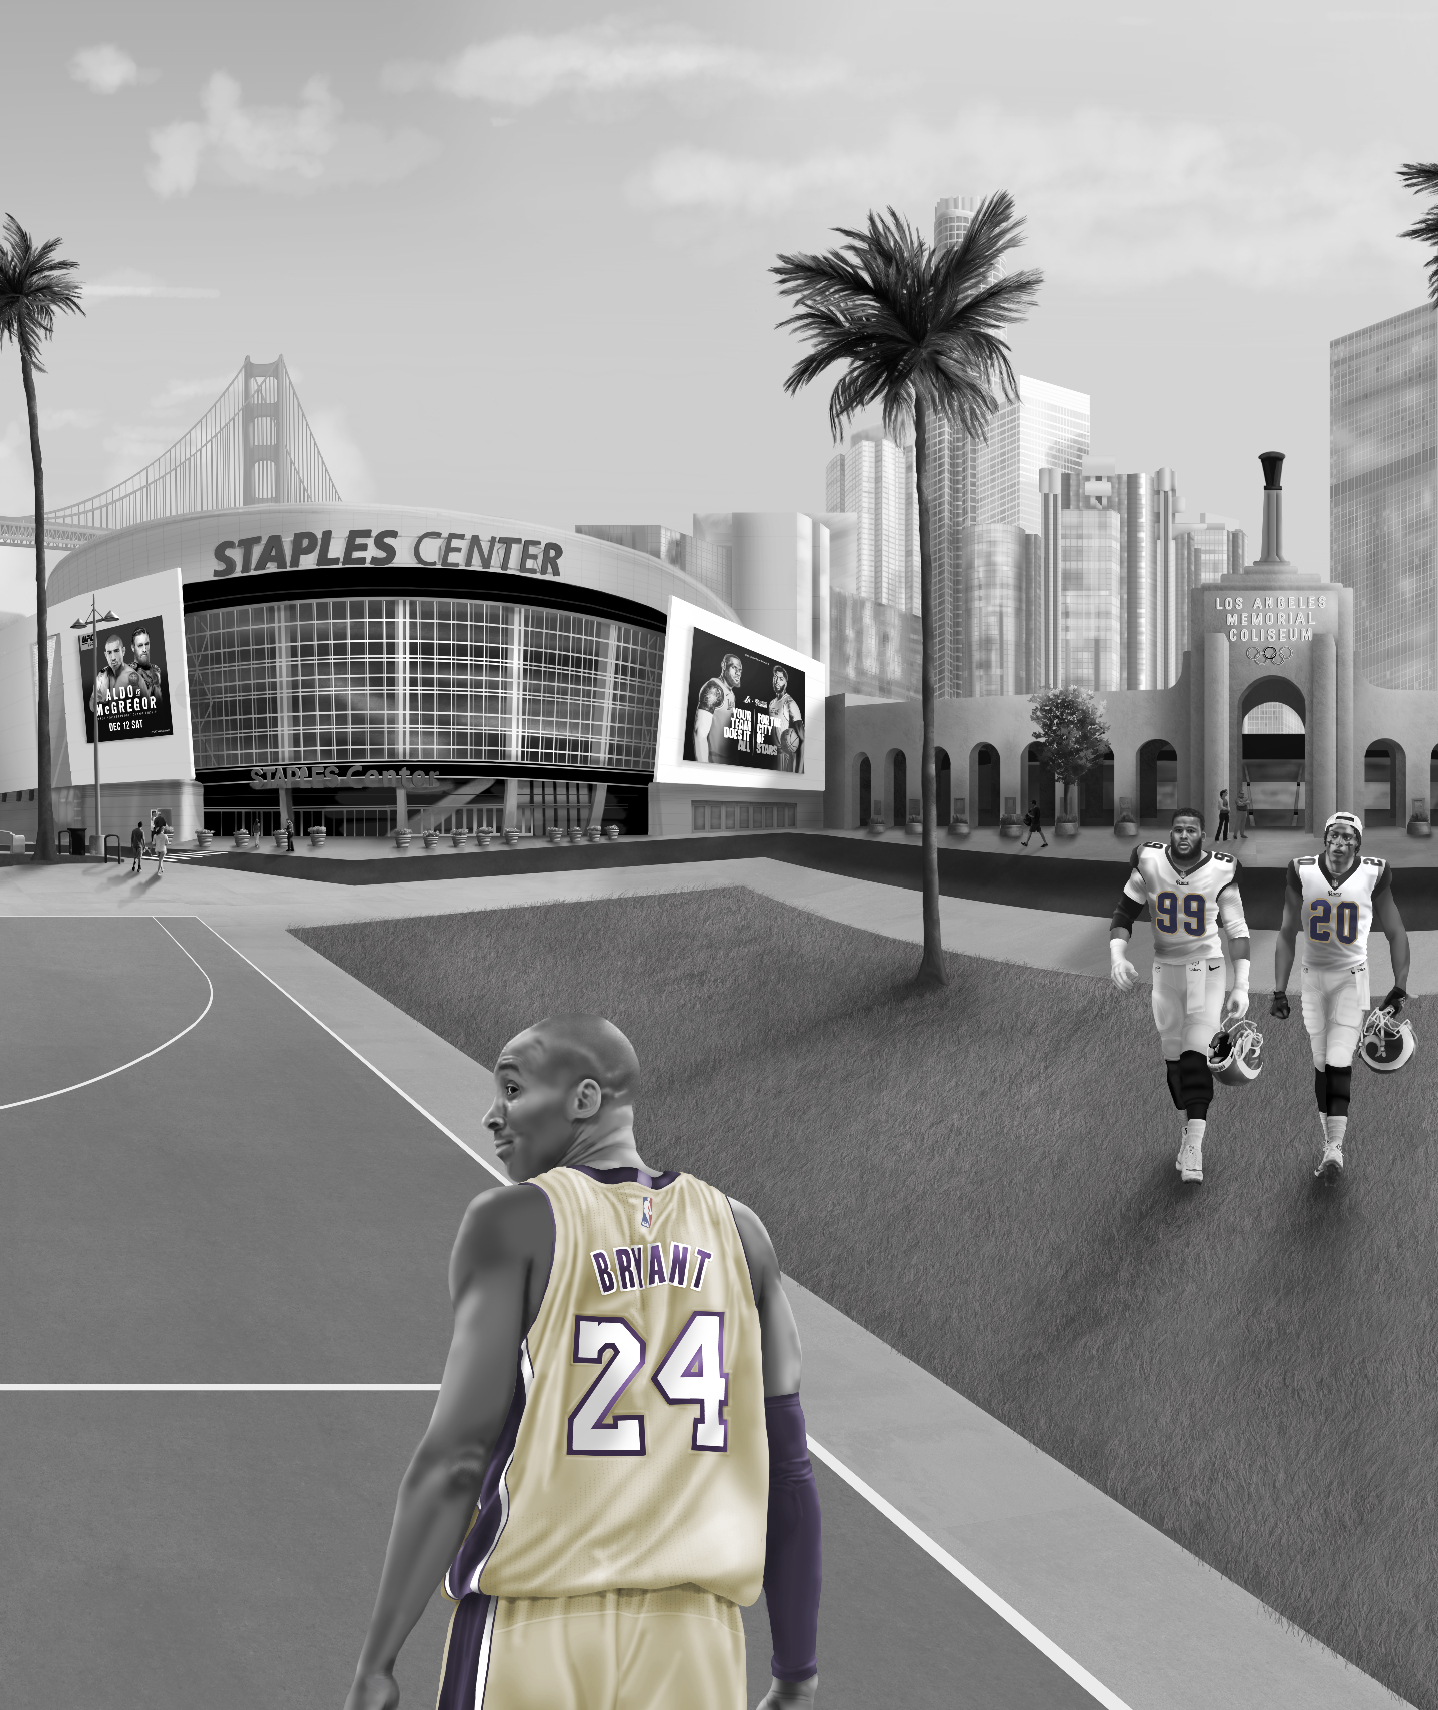 Custom LA LOS ANGELES wall paper wall mural deisgn from australia. Features the staples centre, downtown LA, football, baseball, basketball, Lakers court, palms trees. All set in Grey tones with pop colours